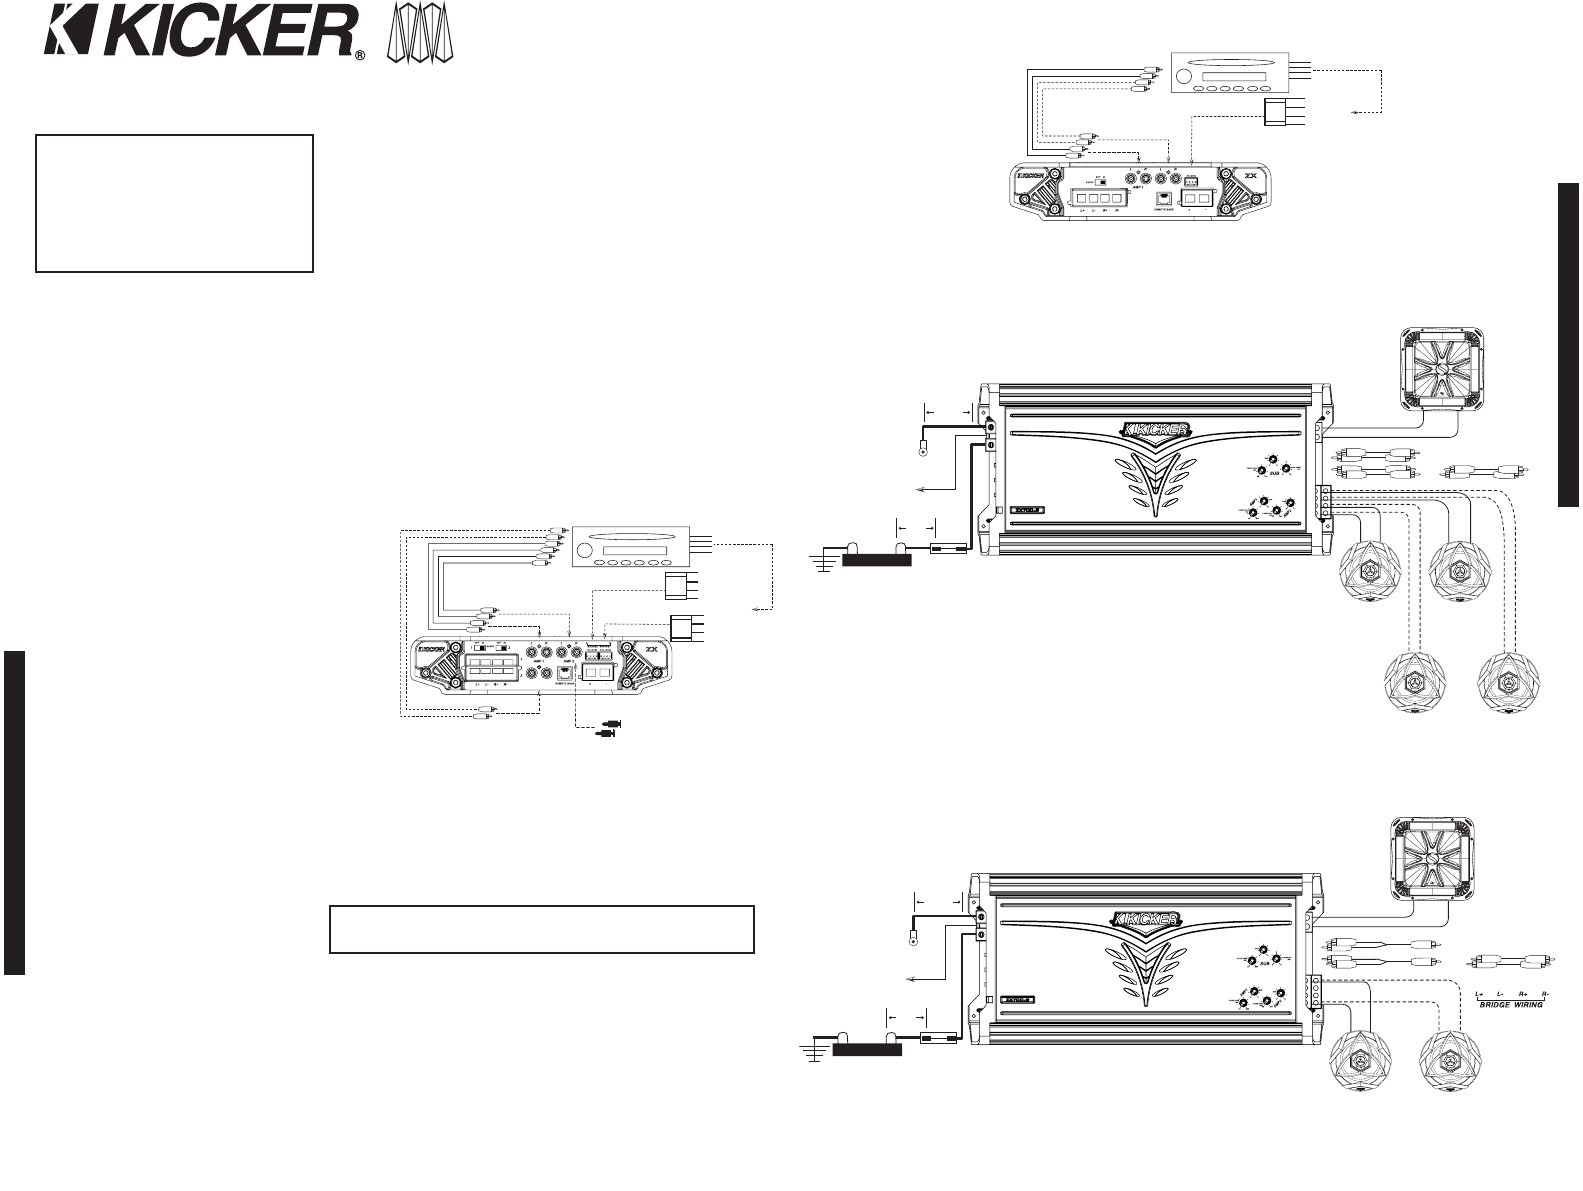 Kicker Powered Subwoofer Wiring Diagram - Wiring Solutions on kicker l7 4 ohm wiring diagram, kicker speaker wire, kicker speaker cable, mini chopper wiring diagram, kicker comp wiring diagram, kicker speaker cover, kicker speaker system, kicker car stereo,